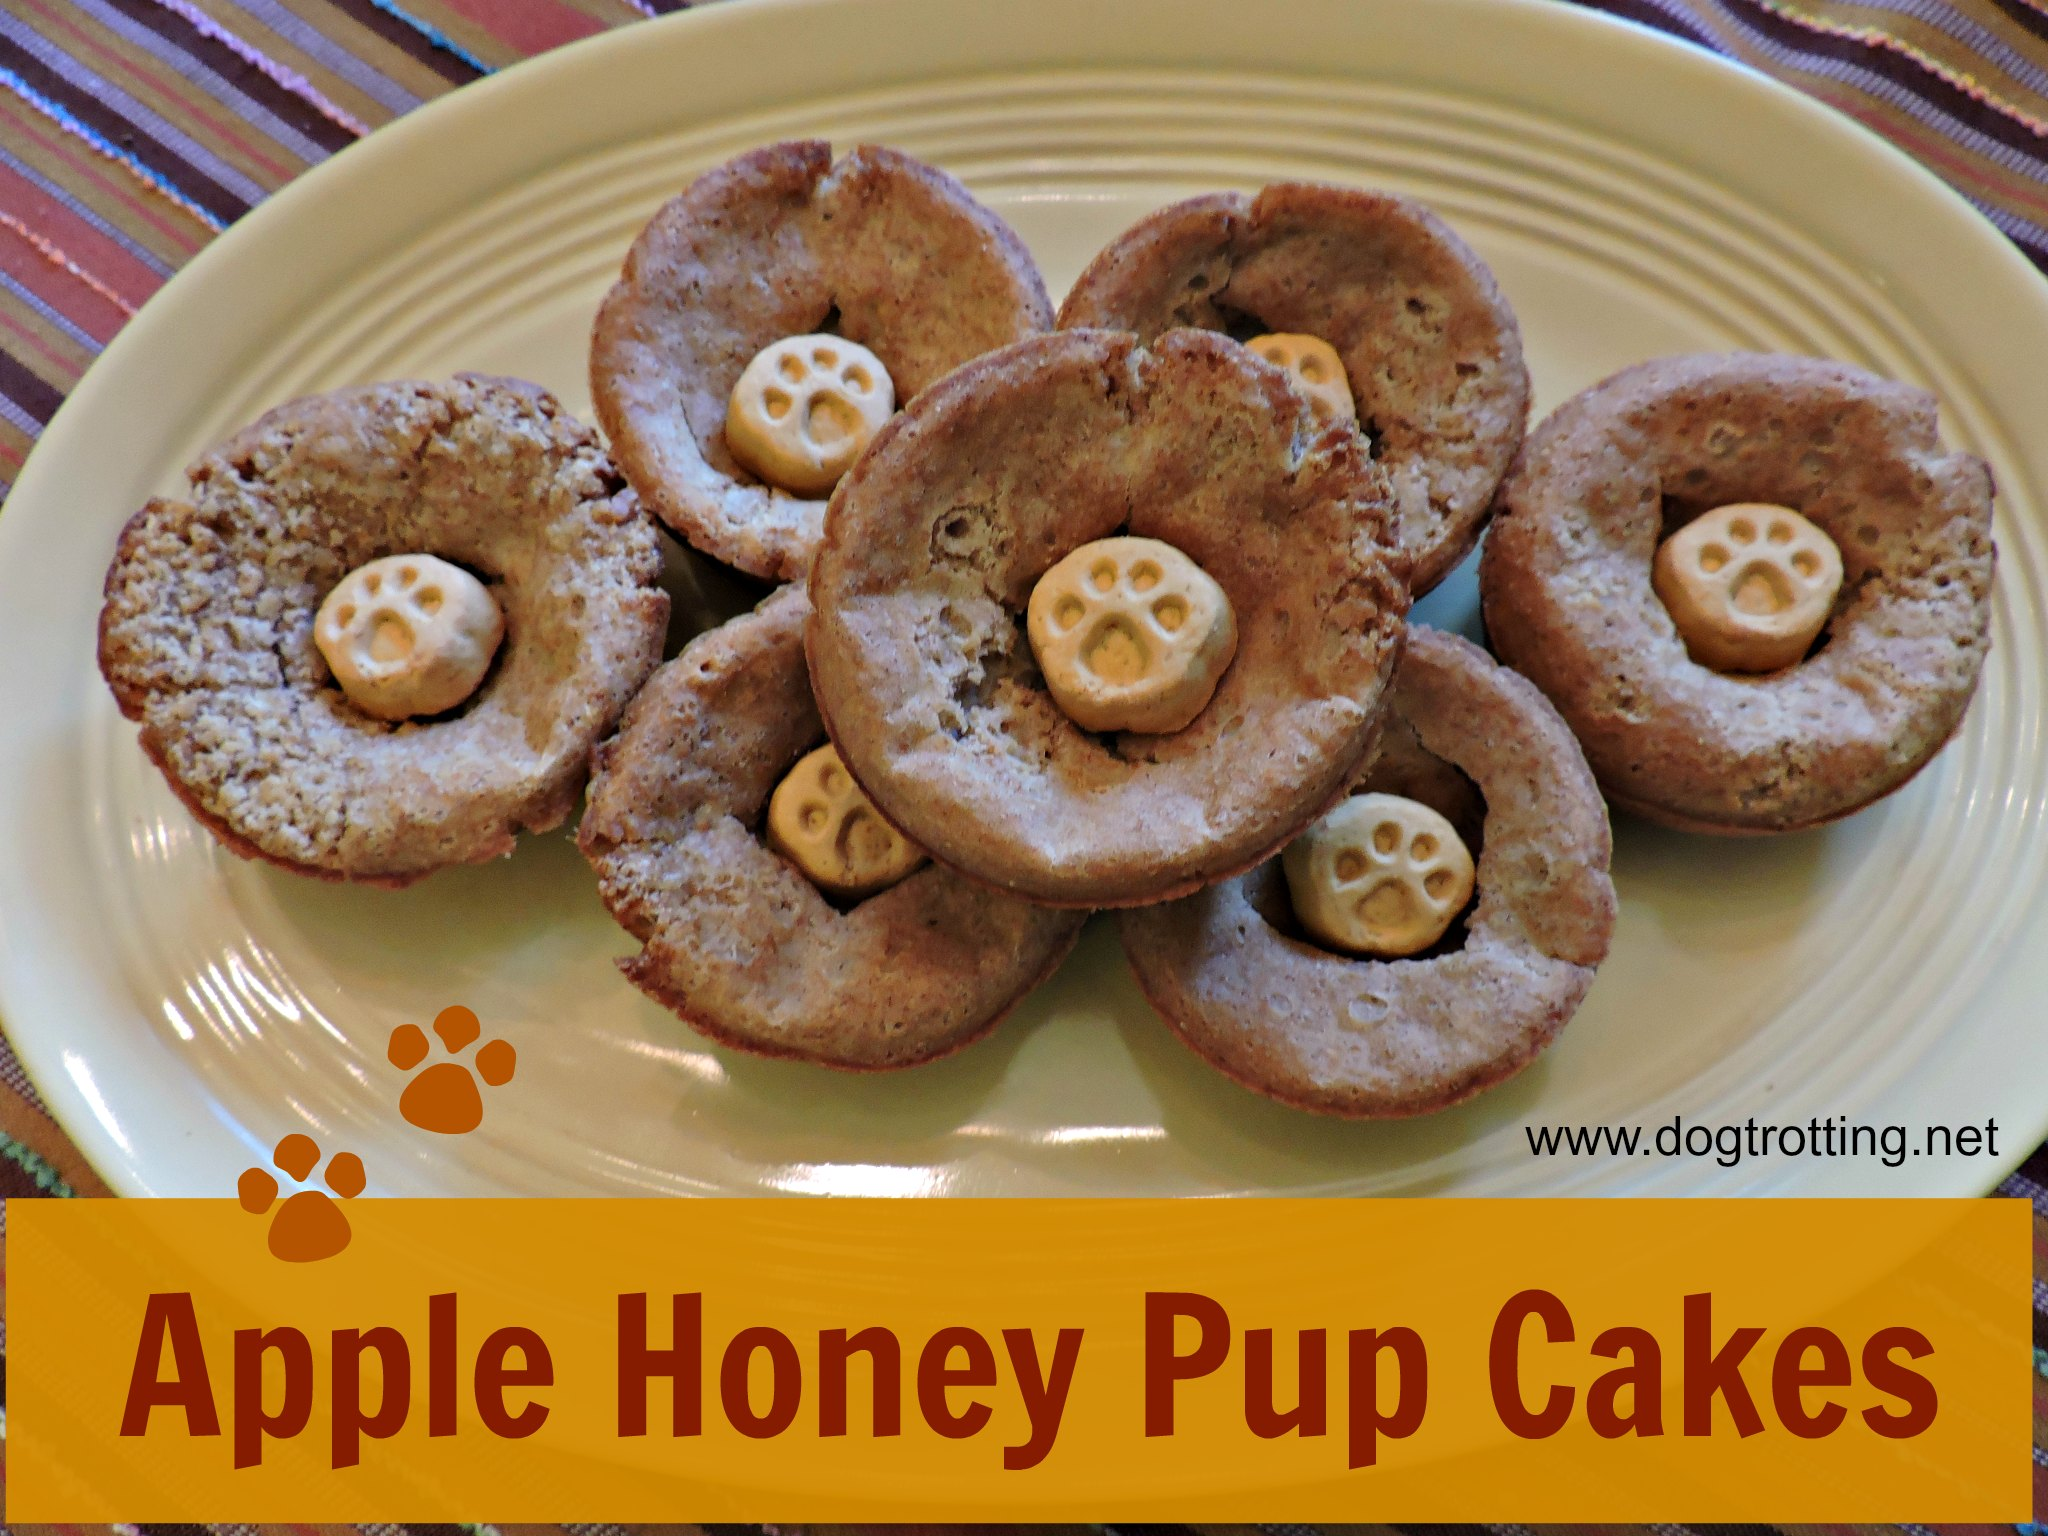 Recipe: Apple Honey Pup Cakes